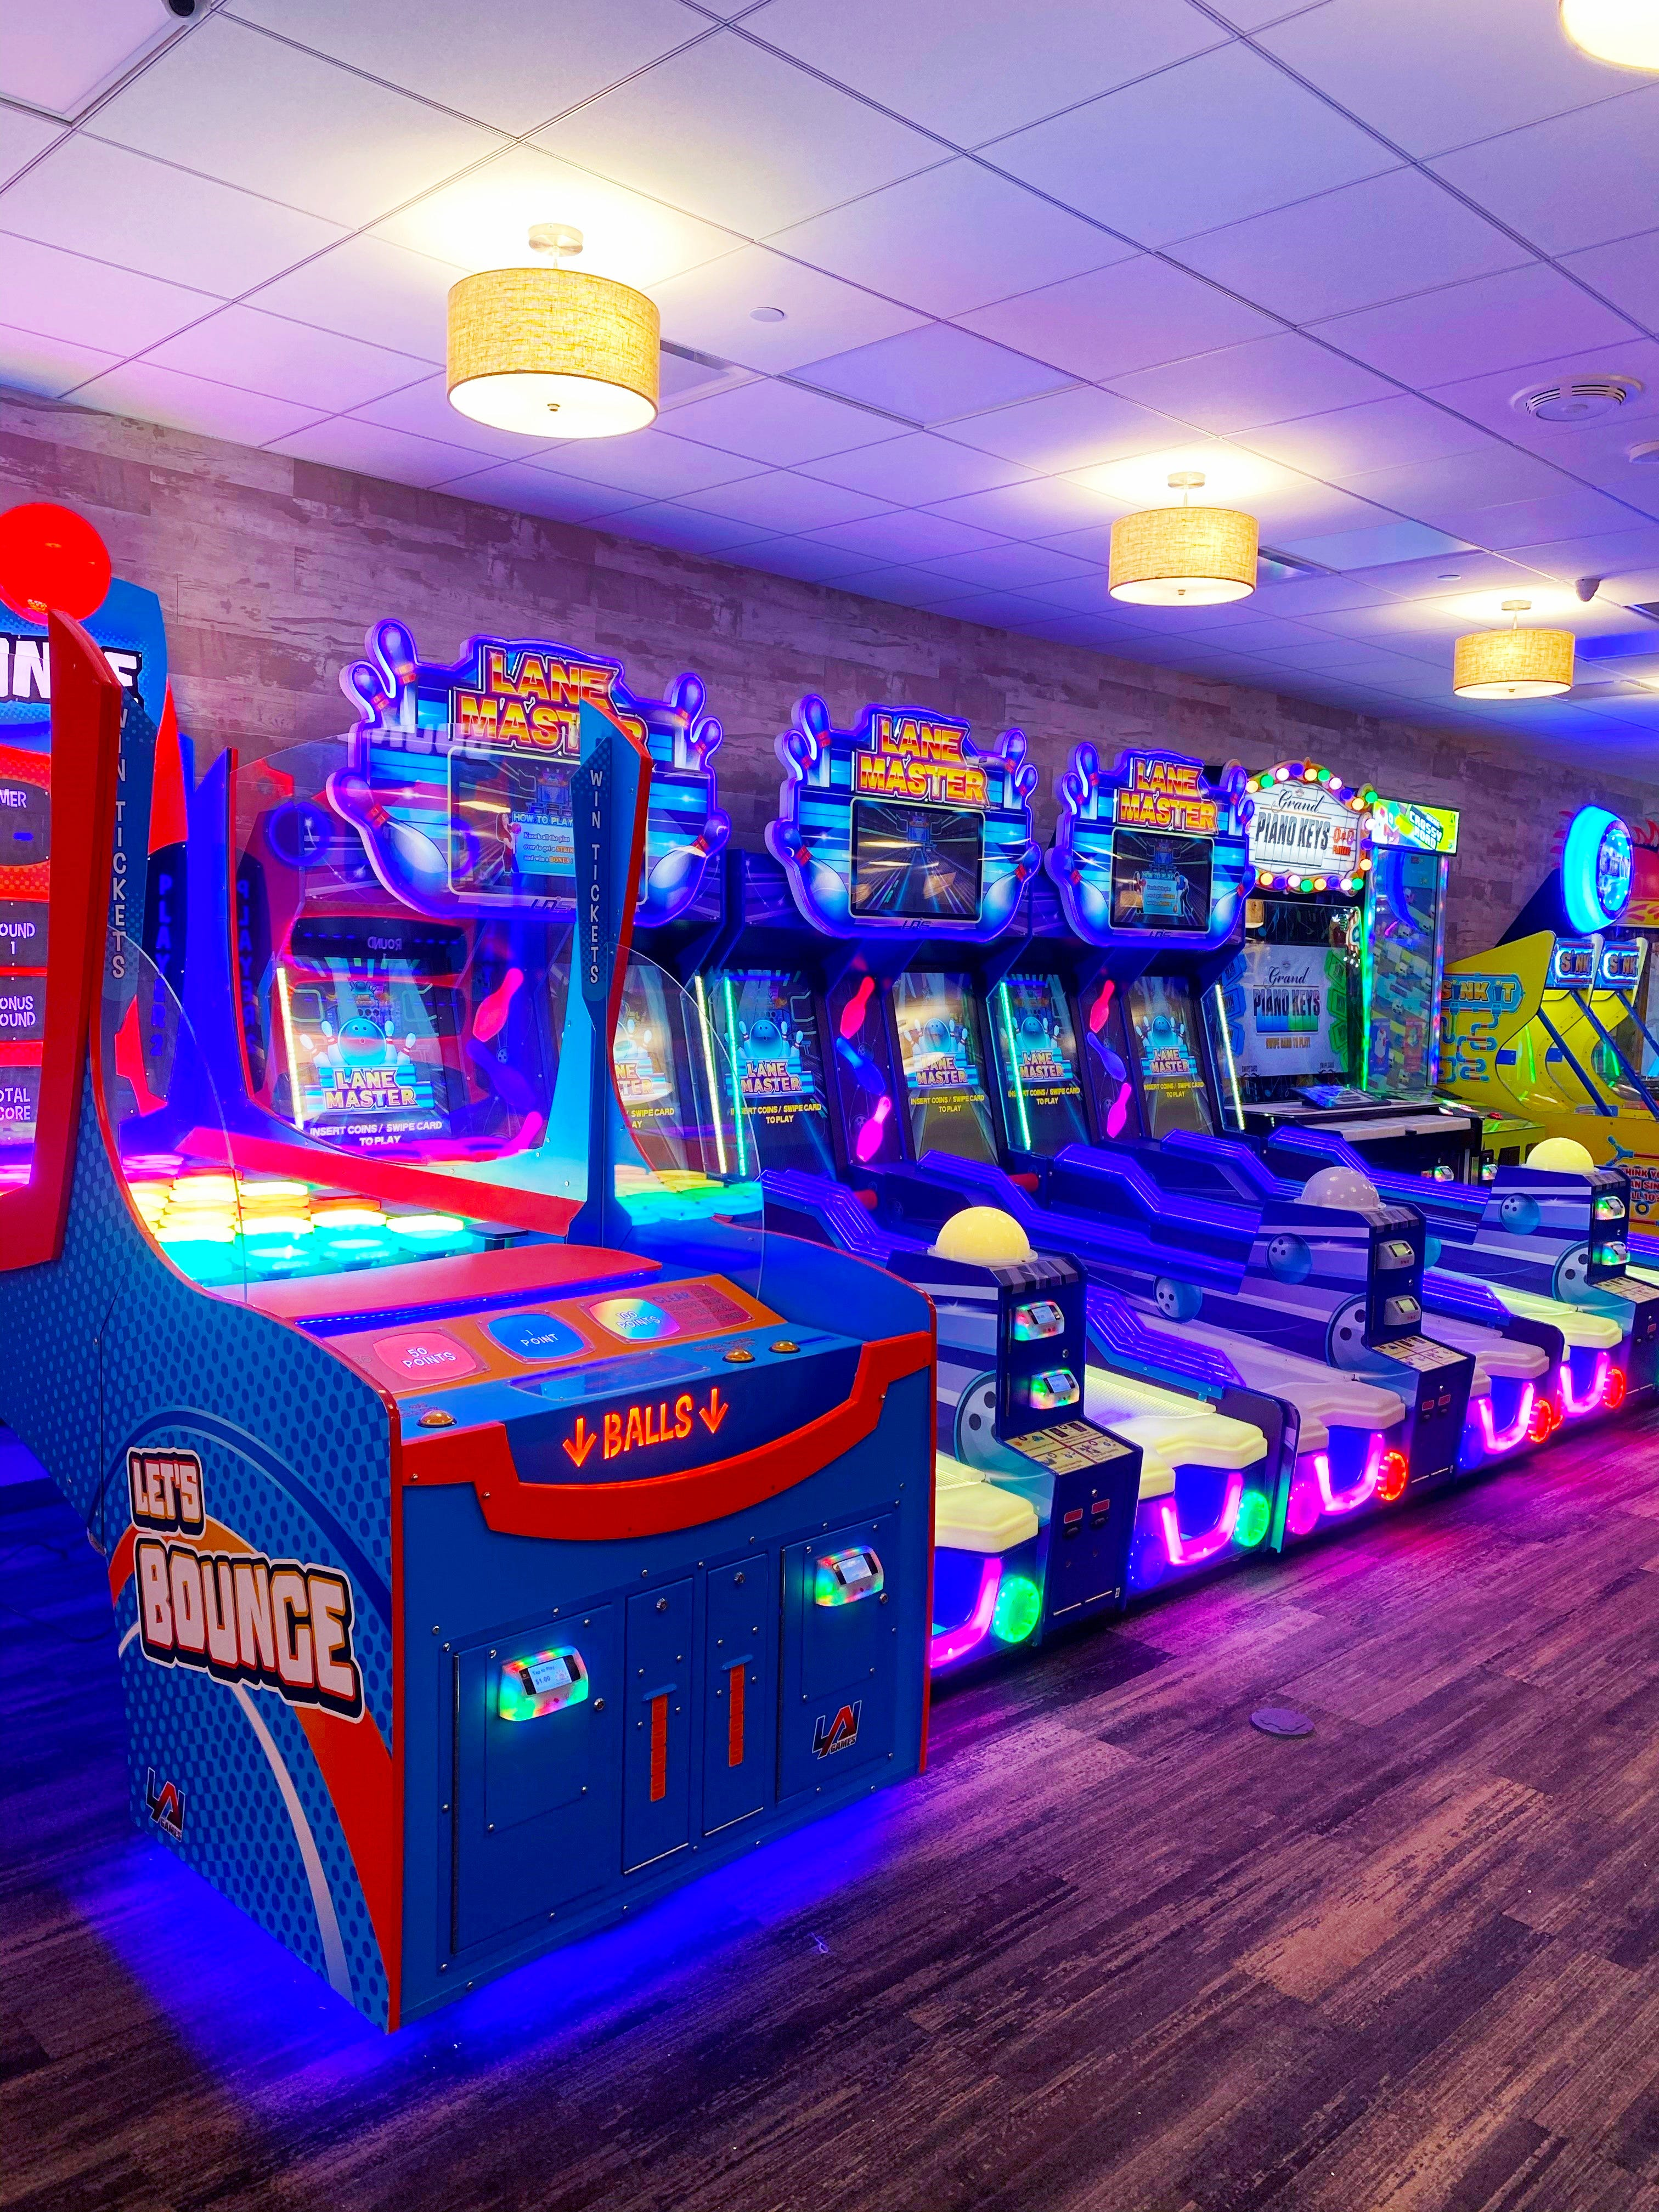 The arcade at Fantasy Island Amusement Park in Beach Haven has been upgraded in time for the 2021 season.